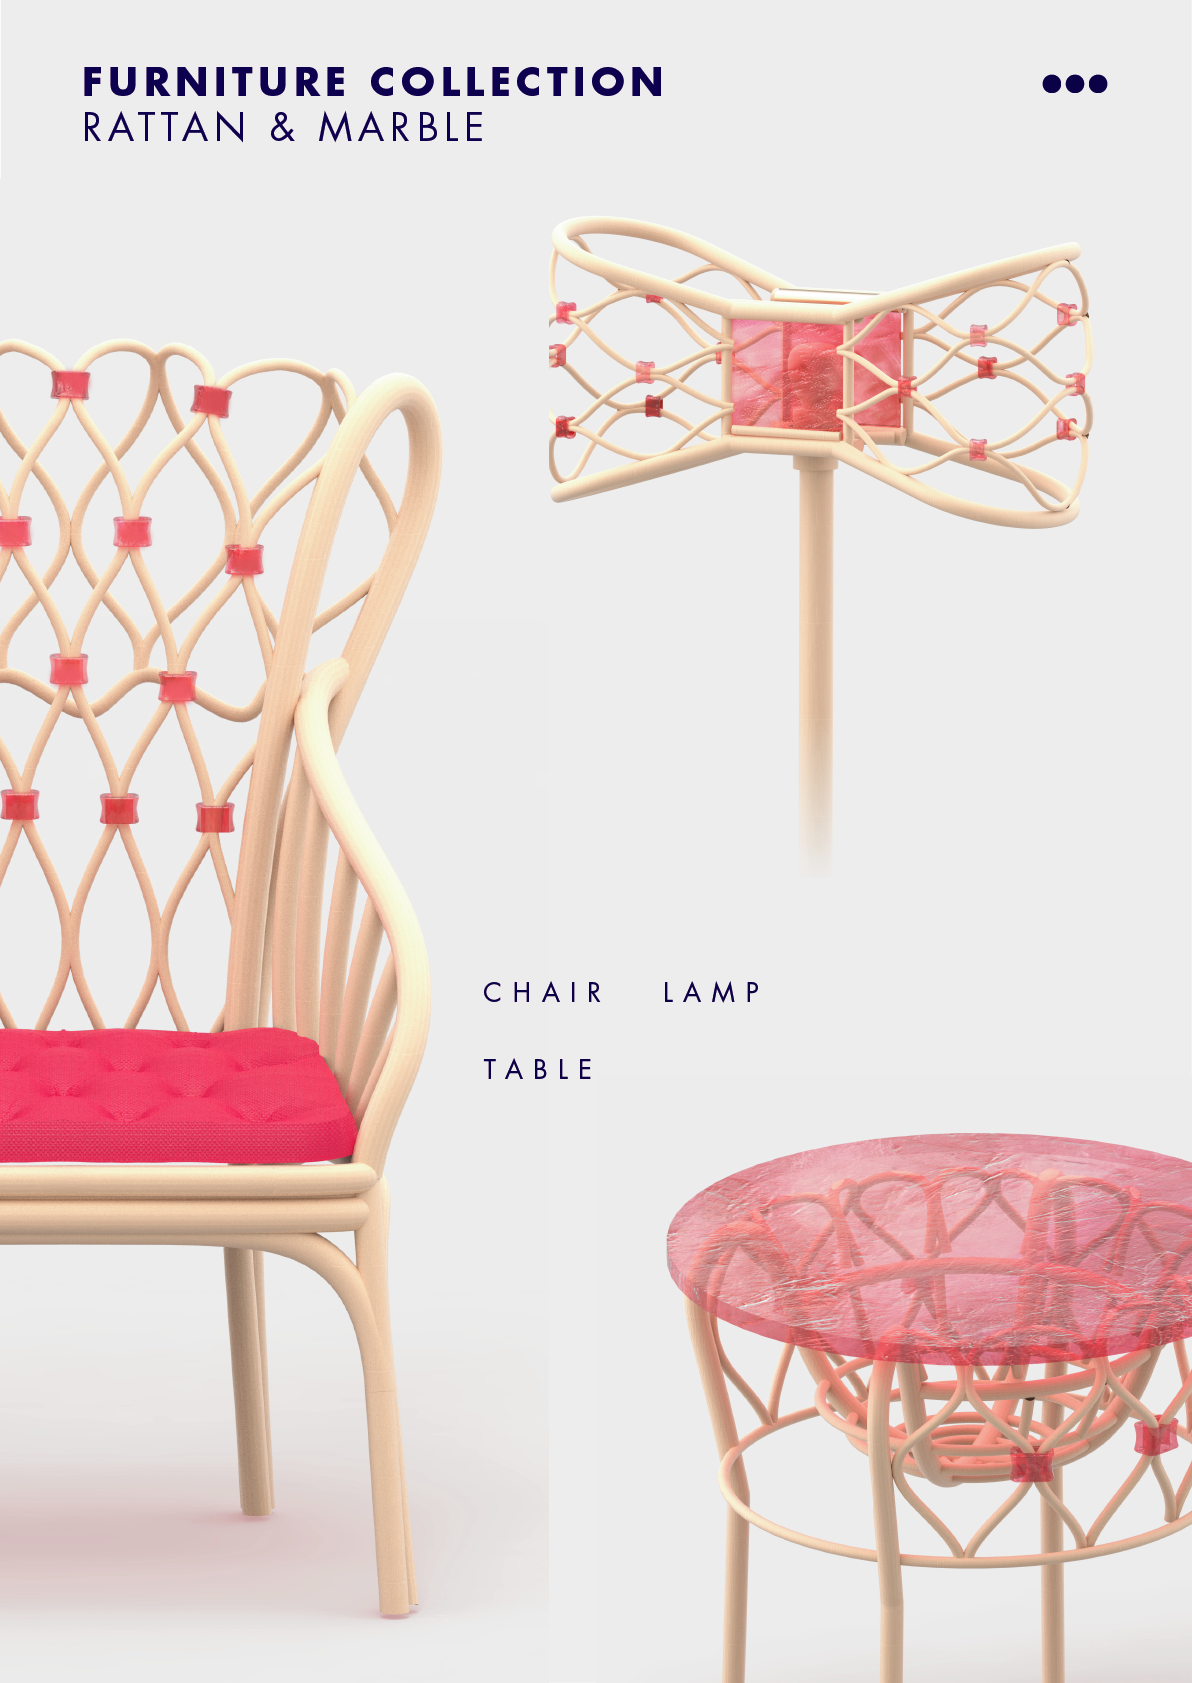 rattan furniture Marble chair table Lamp Render product design  3D design